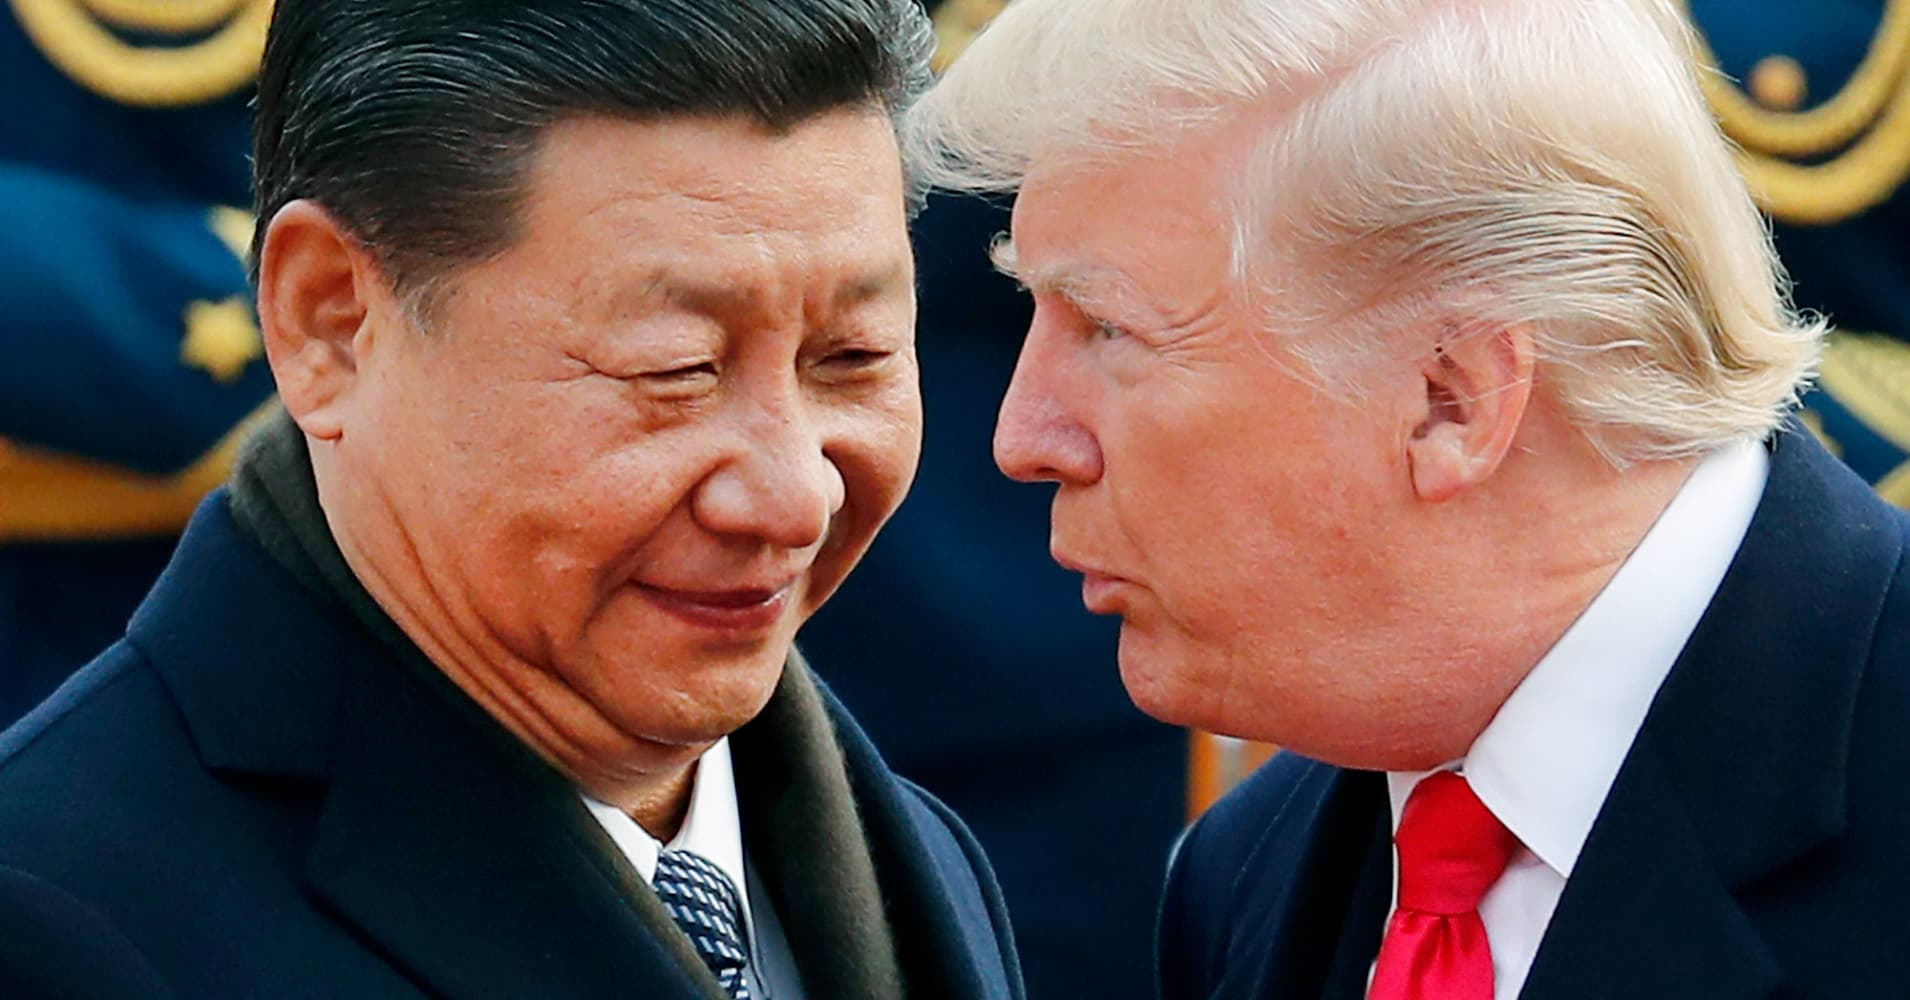 China is waging a 'quiet kind of cold war' against US, top CIA expert says